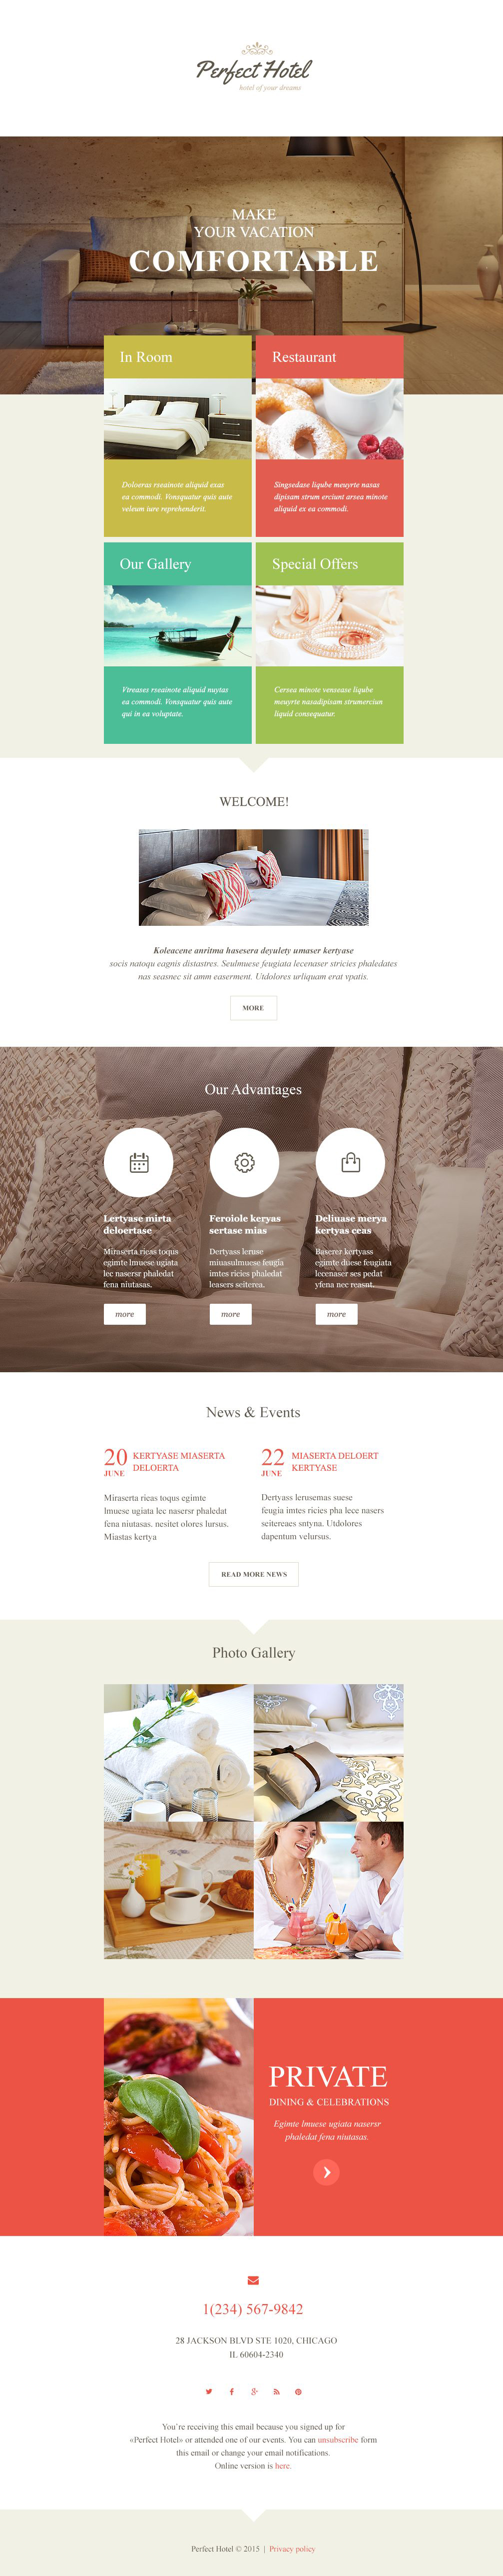 The Hotel Exouisite Newsletter Template Design 54694, one of the best Newsletter templates of its kind (hotels, most popular), also known as hotel exouisite Newsletter template, modern traditional Newsletter template, royal motel Newsletter template, PSD template Newsletter template, exotic Newsletter template, building Newsletter template, events Newsletter template, interior Newsletter template, cozy Newsletter template, comfortable room Newsletter template, spacious Newsletter template, light Newsletter template, modern rest Newsletter template, pool Newsletter template, floor Newsletter template, stairs Newsletter template, staff Newsletter template, reception Newsletter template, testimonial Newsletter template, service Newsletter template, offer Newsletter template, booking Newsletter template, reservation Newsletter template, order Newsletter template, location Newsletter template, security Newsletter template, wedding and related with hotel exouisite, modern traditional, royal motel, PSD template, exotic, building, events, interior, cozy, comfortable room, spacious, light, modern rest, pool, floor, stairs, staff, reception, testimonial, service, offer, booking, reservation, order, location, security, wedding, etc.